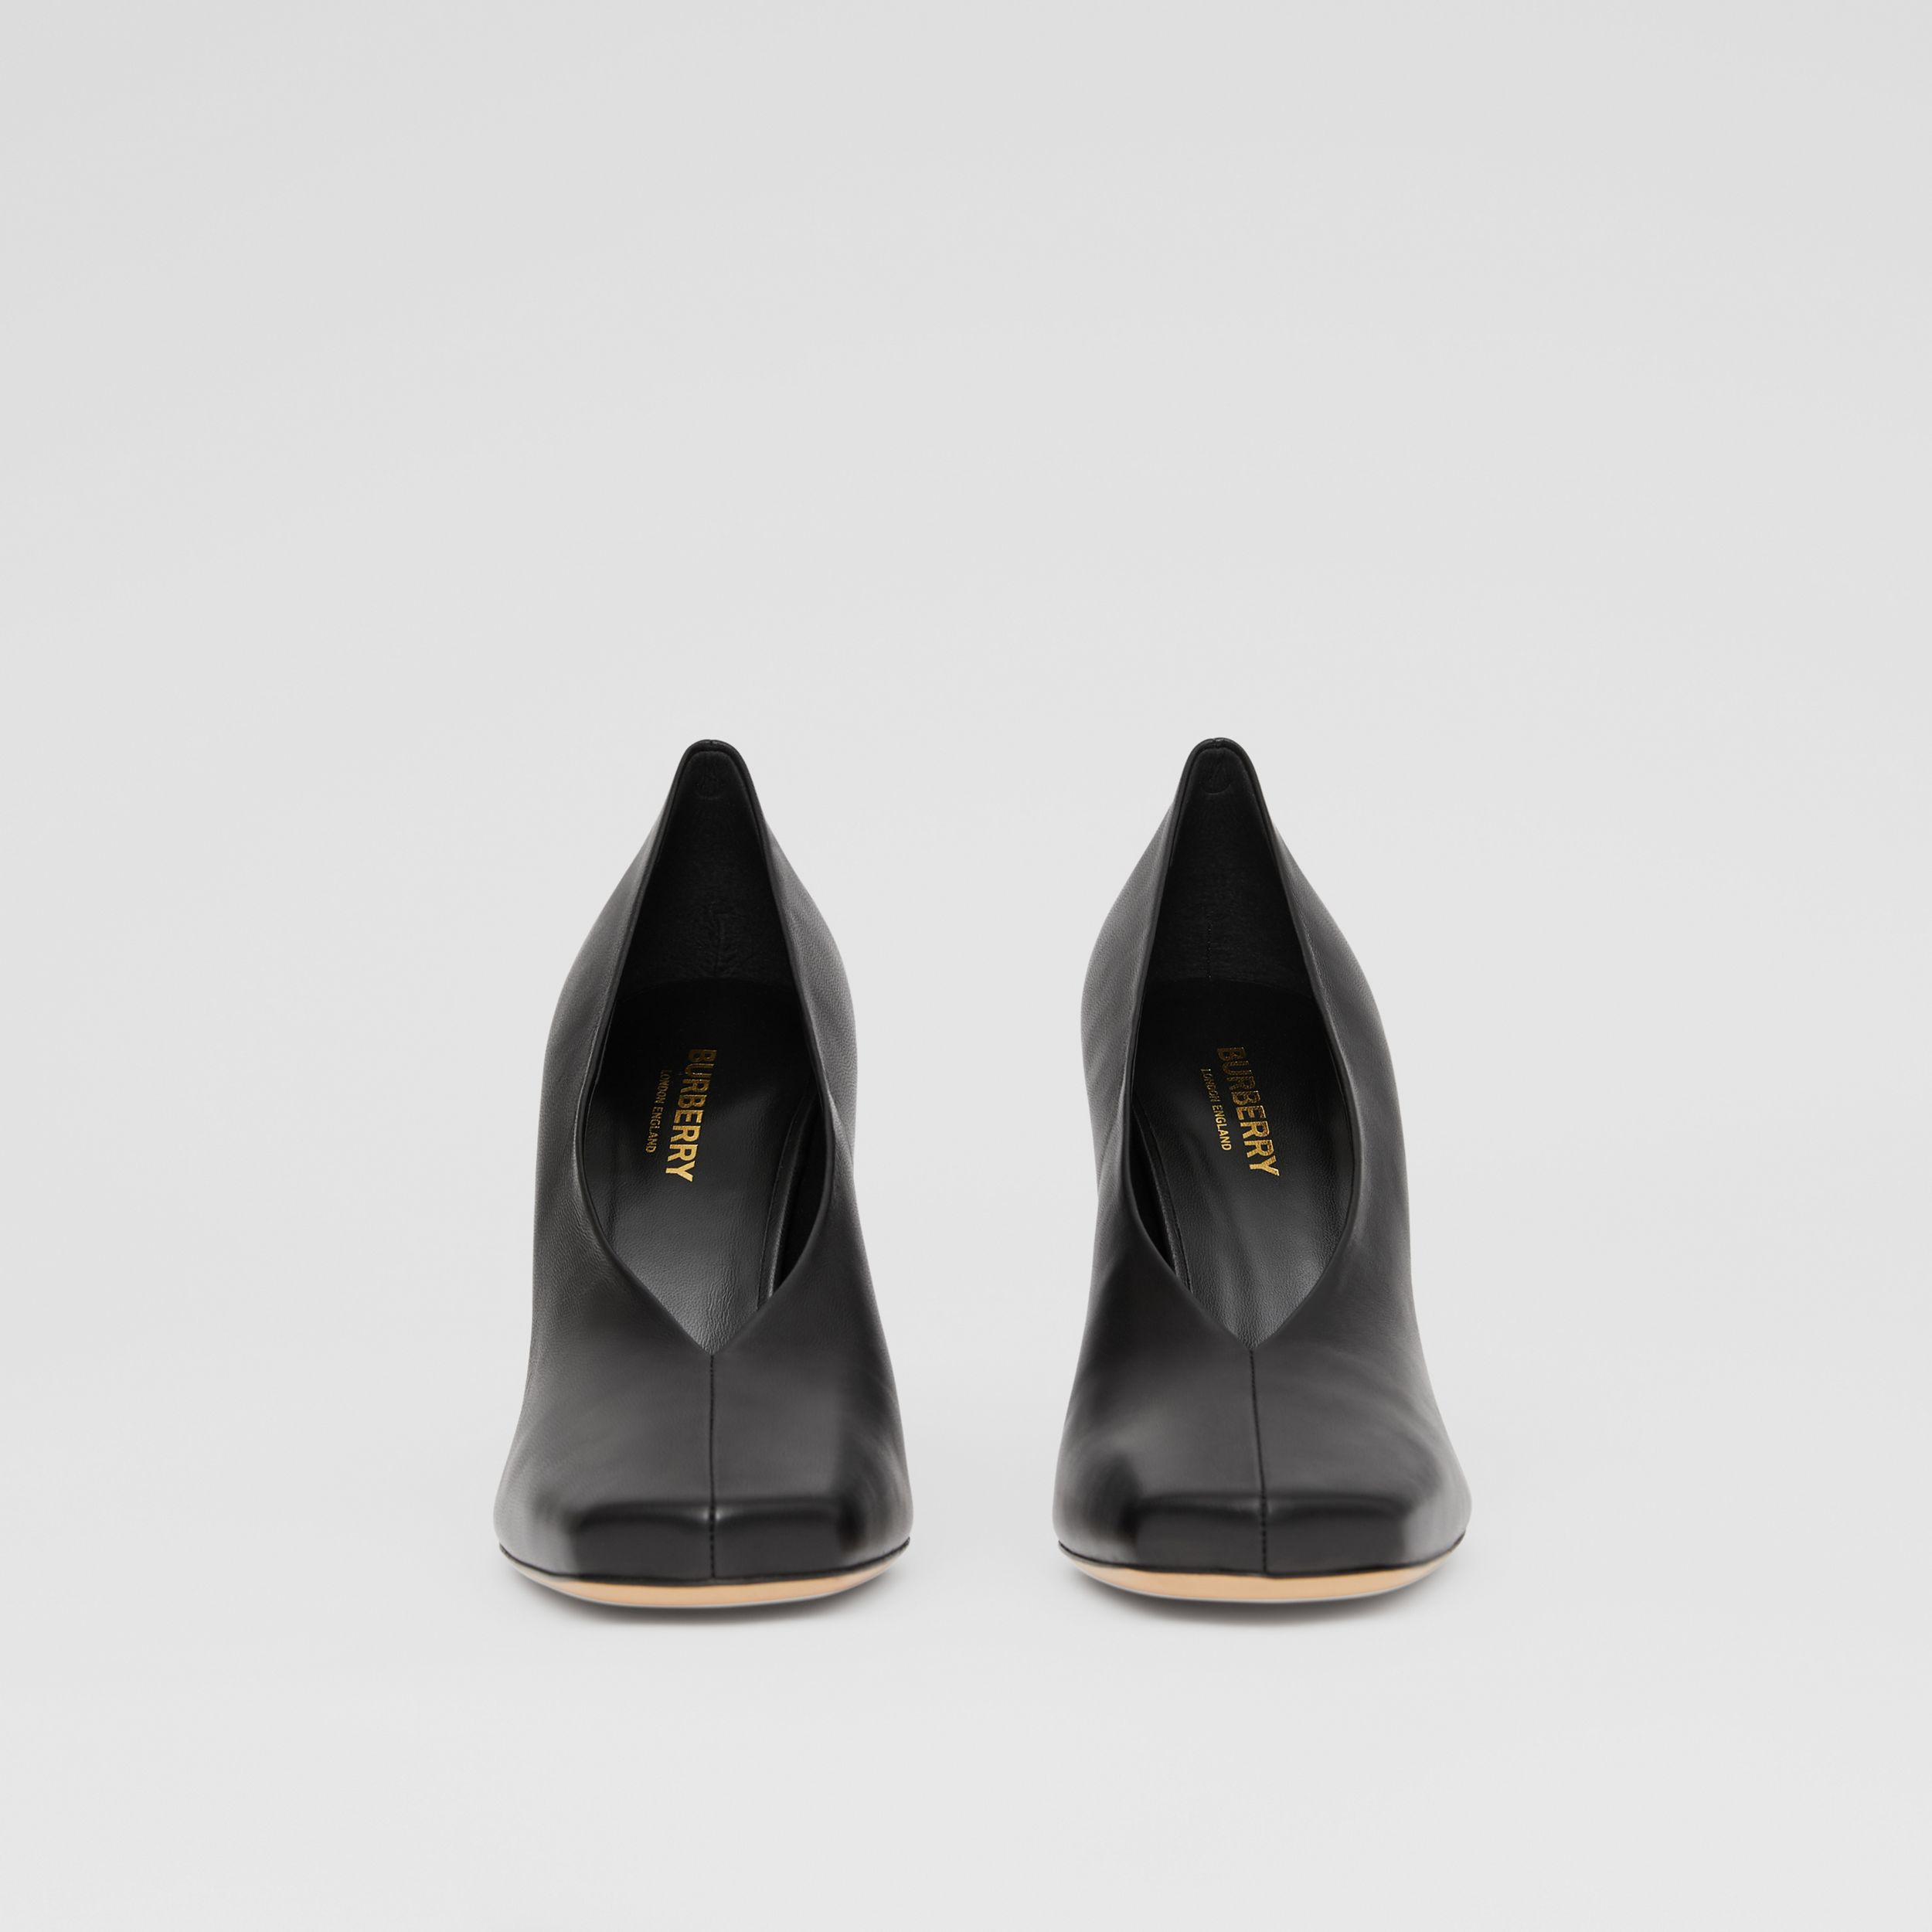 Lambskin Sculptural Pumps in Black - Women | Burberry Canada - 4